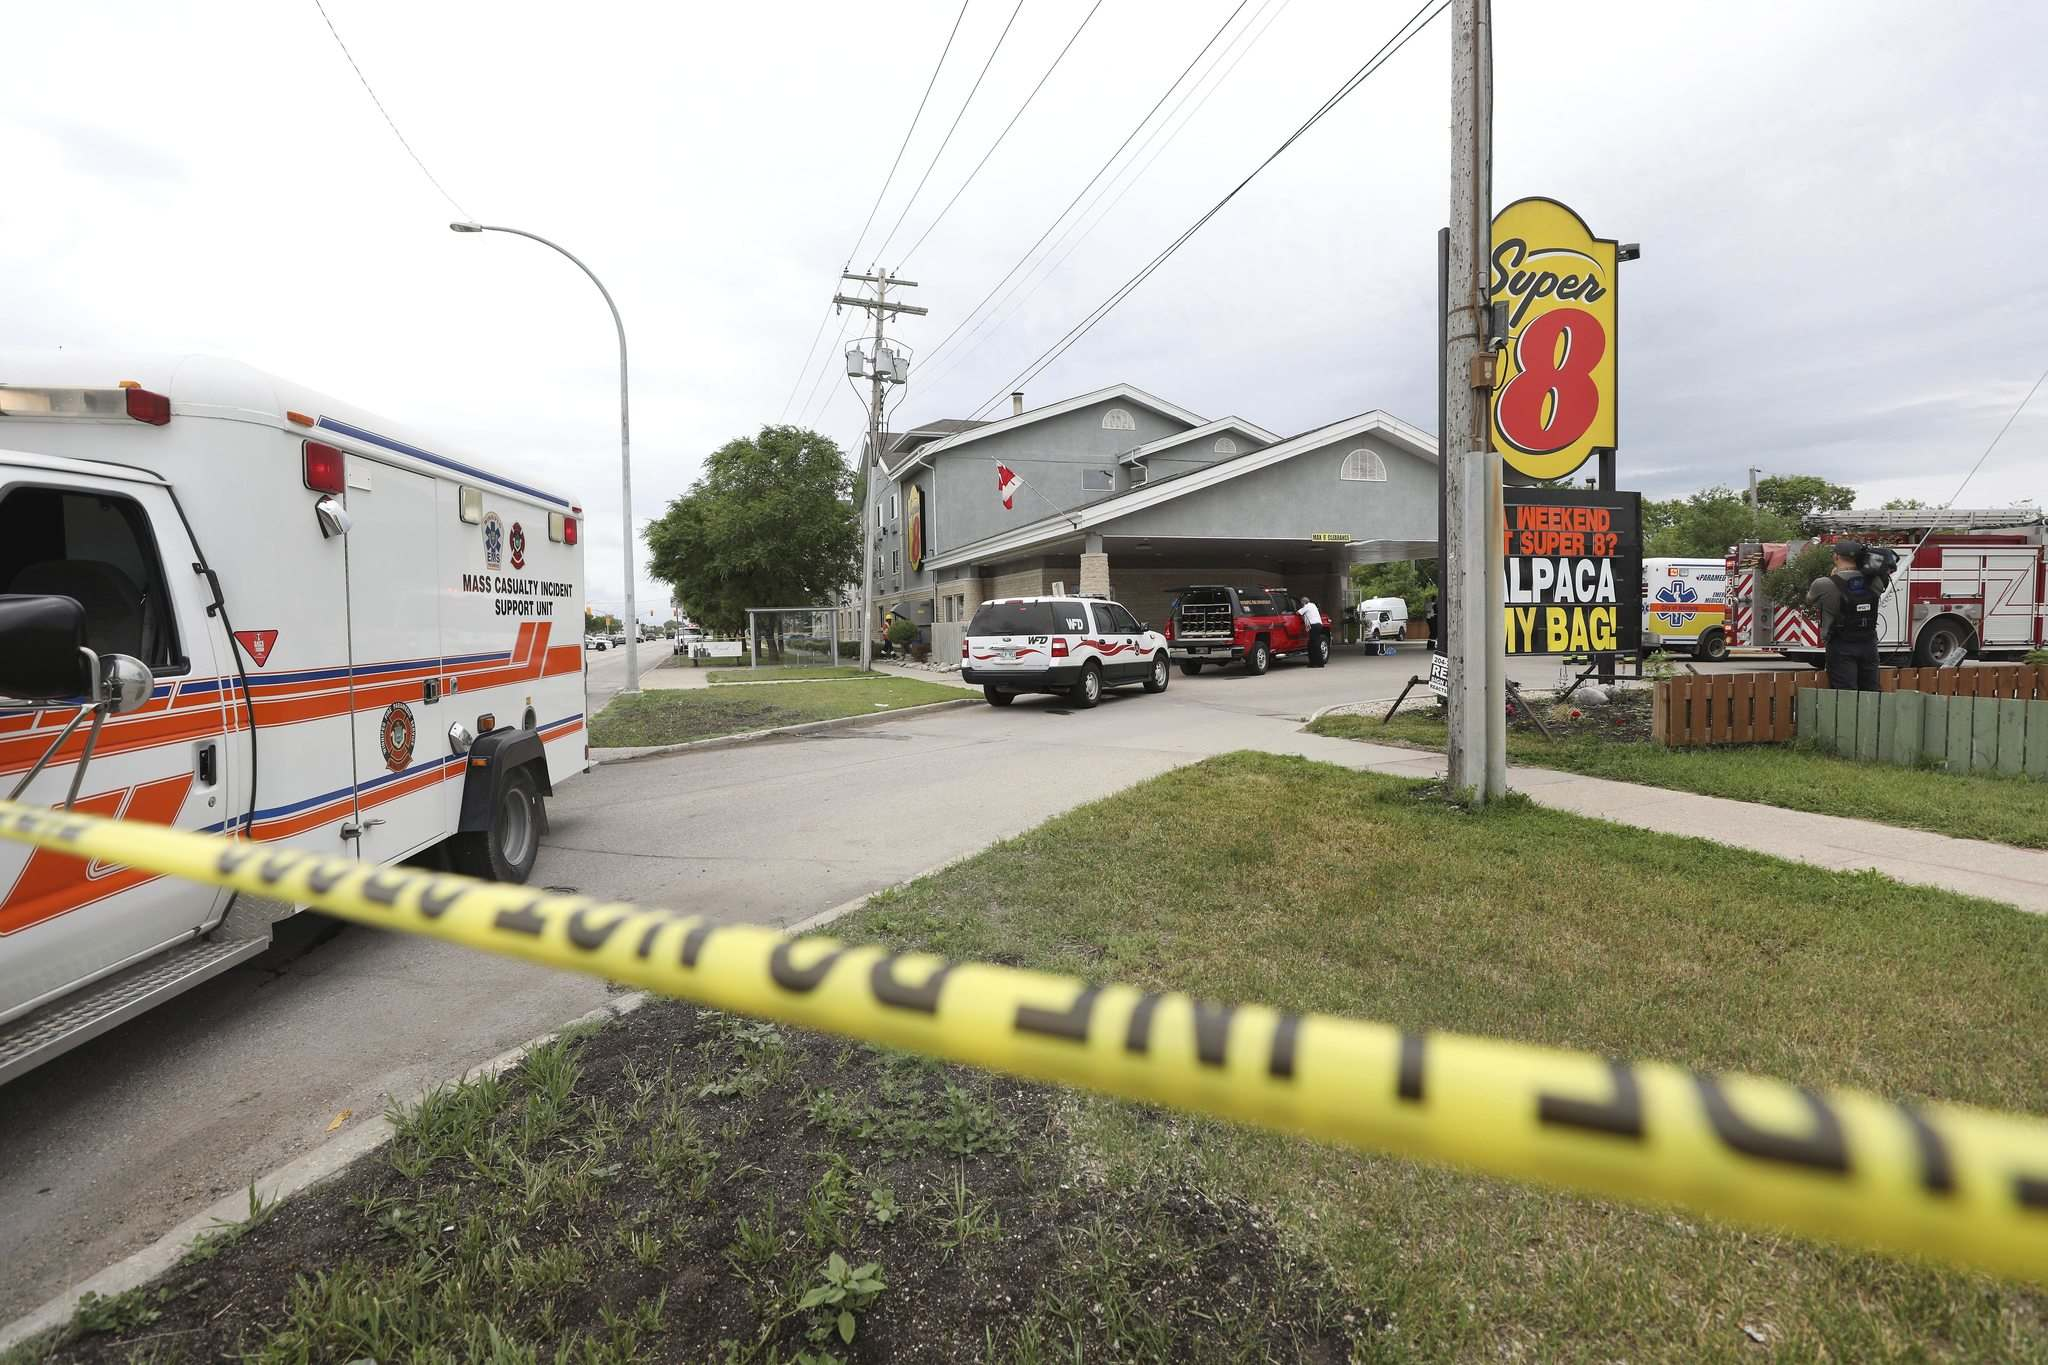 When emergeny crews entered the Super 8 hotel at 3760 Portage Ave. on July 9 responding to a carbon monoxide leak, they also found fire code breaches. (Ruth Bonneville / Free Press files)</p>